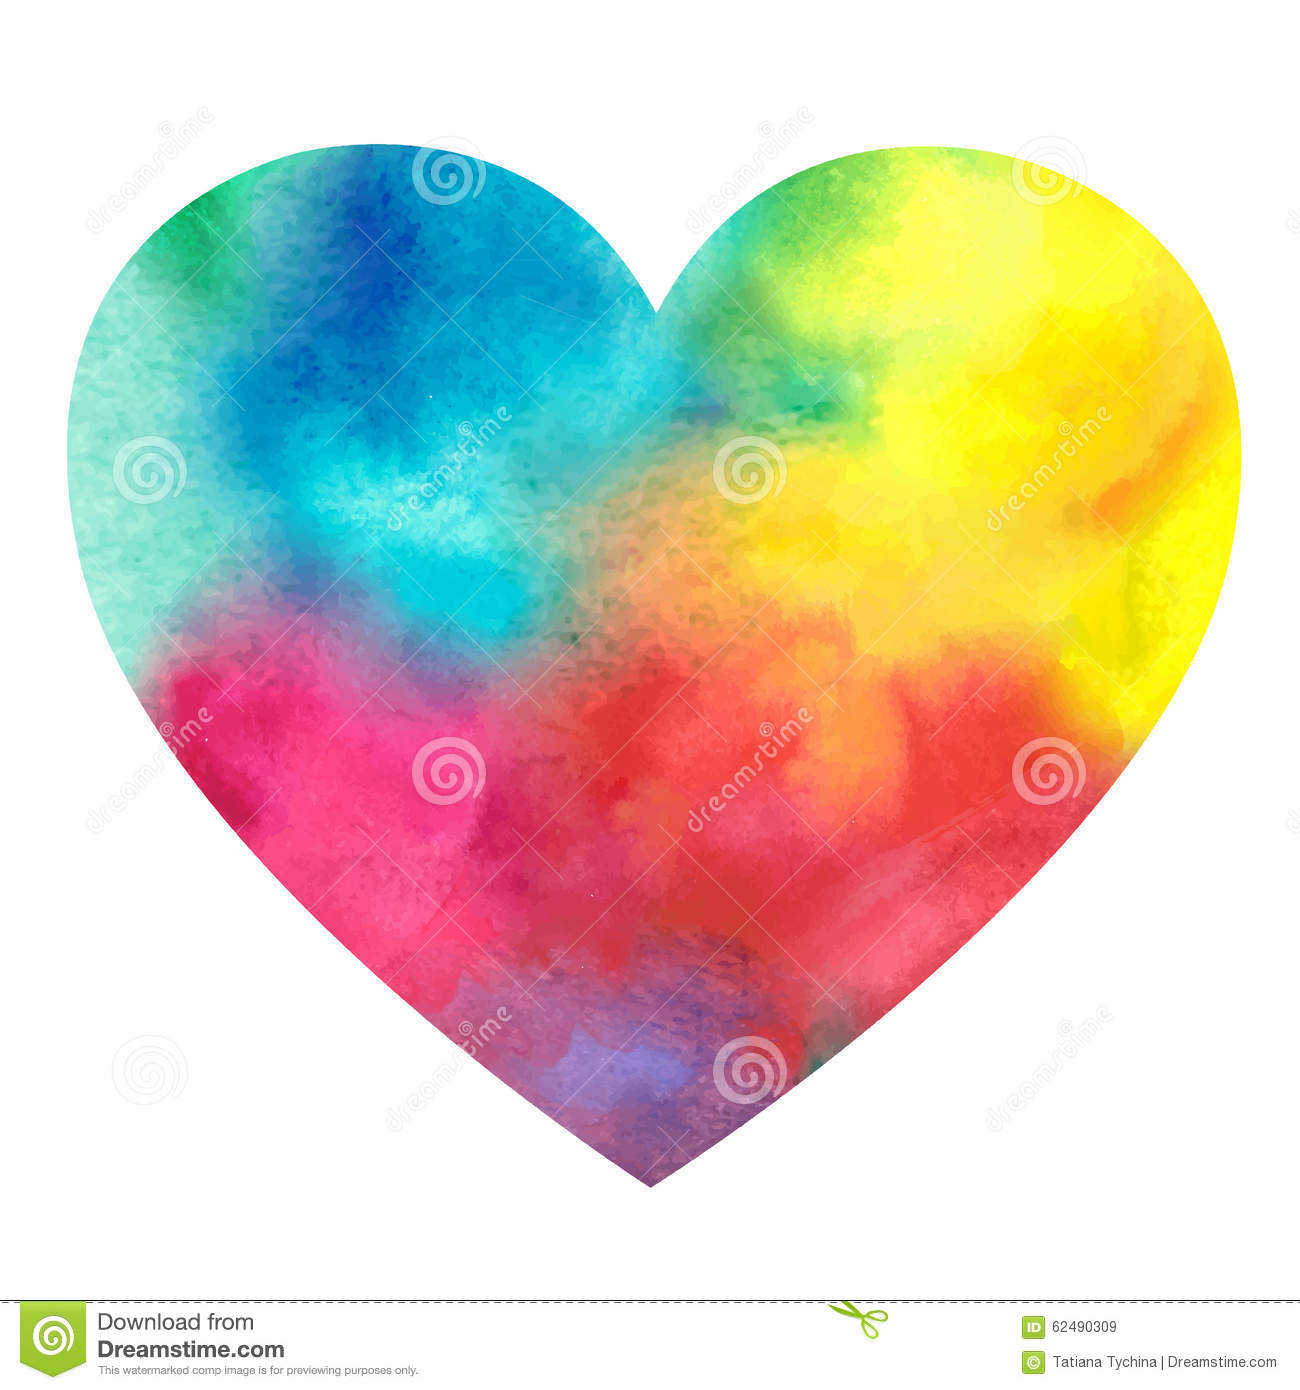 Watercolor Painted Heart On A White Background Stock